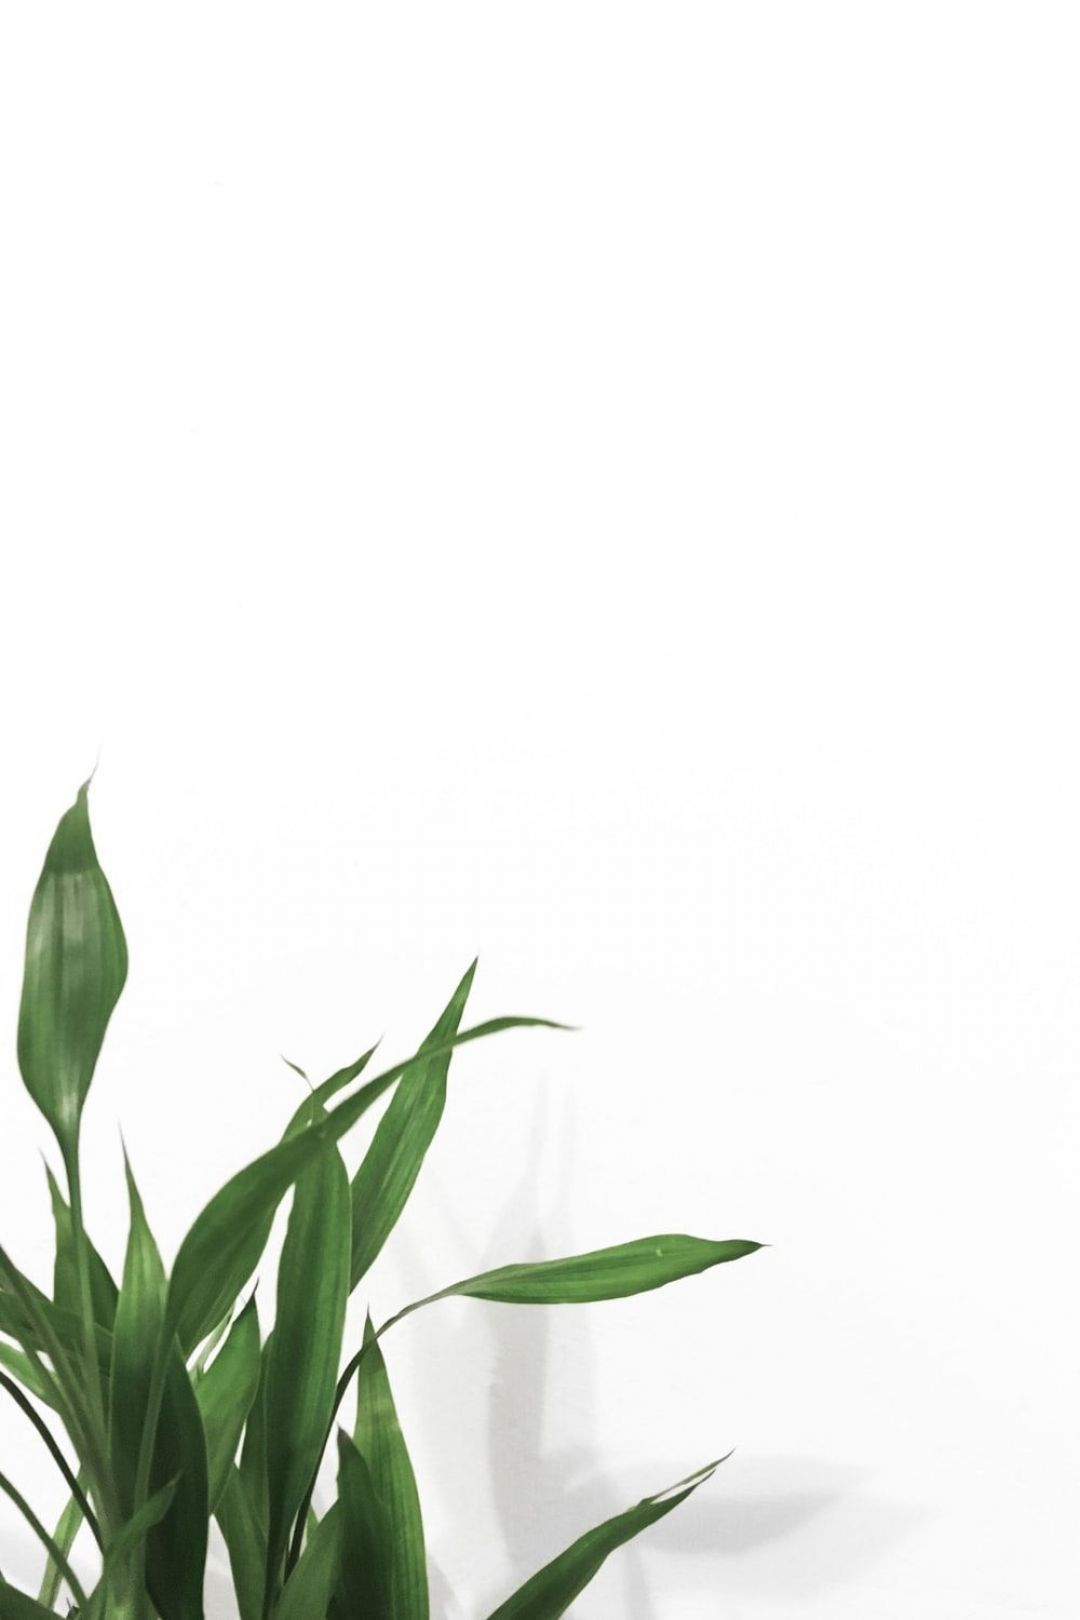 Minimal Android Iphone Desktop Hd Backgrounds Wallpapers 1080p 4k 127069 Hdwallpapers And Flower Background Wallpaper Plant Wallpaper Green Photo